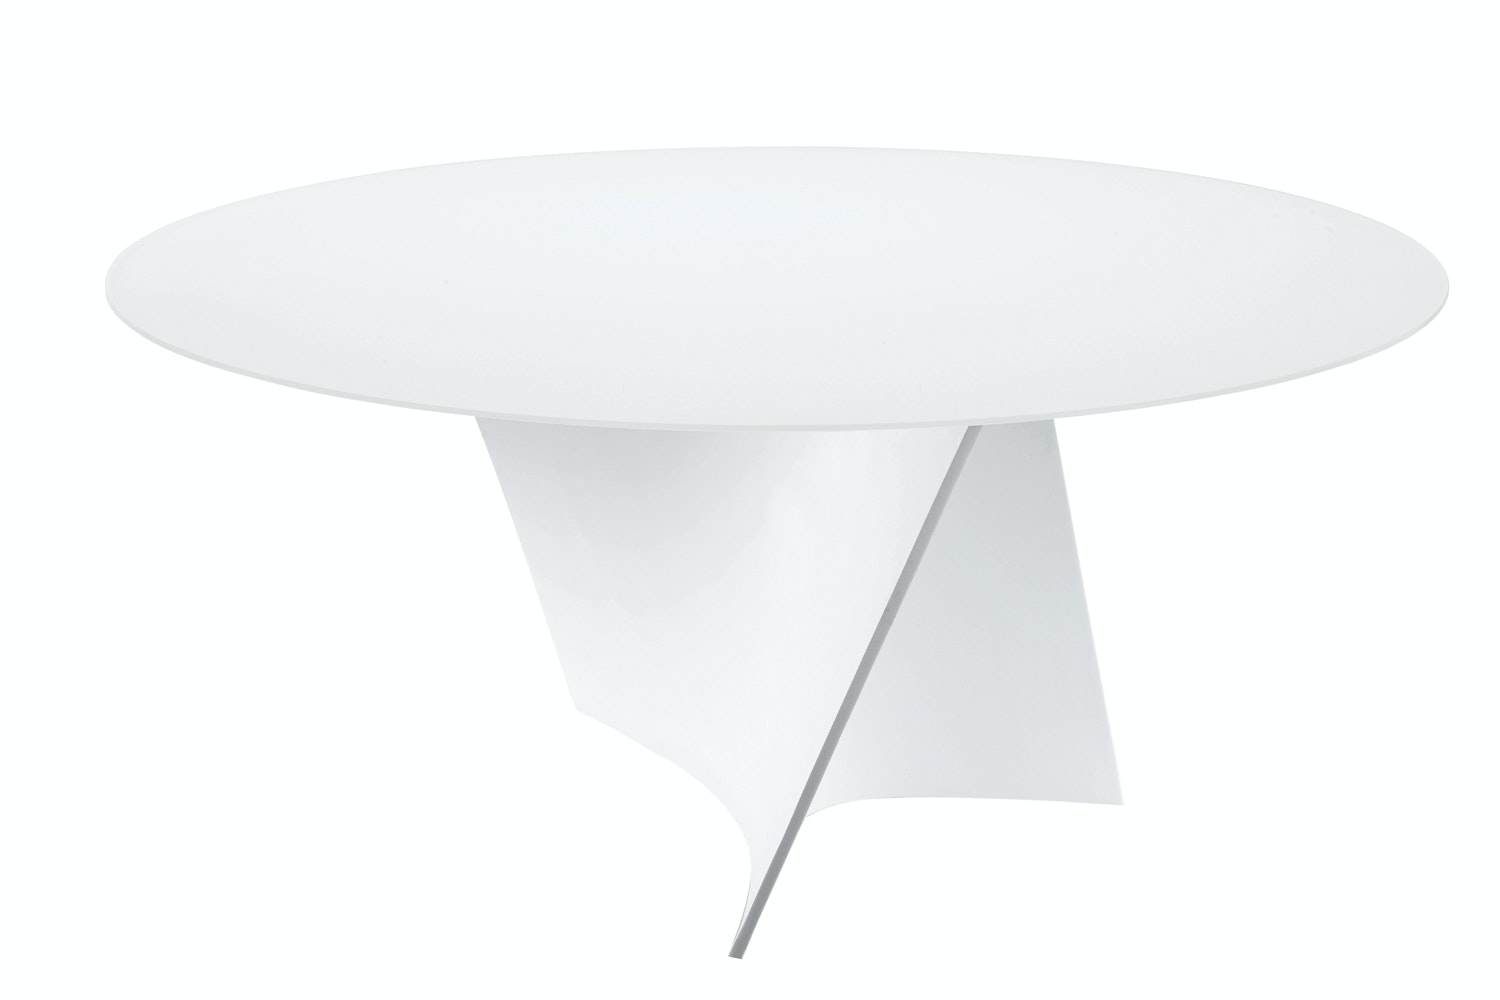 Elica 2575 Table by Prospero Rasulo for Zanotta